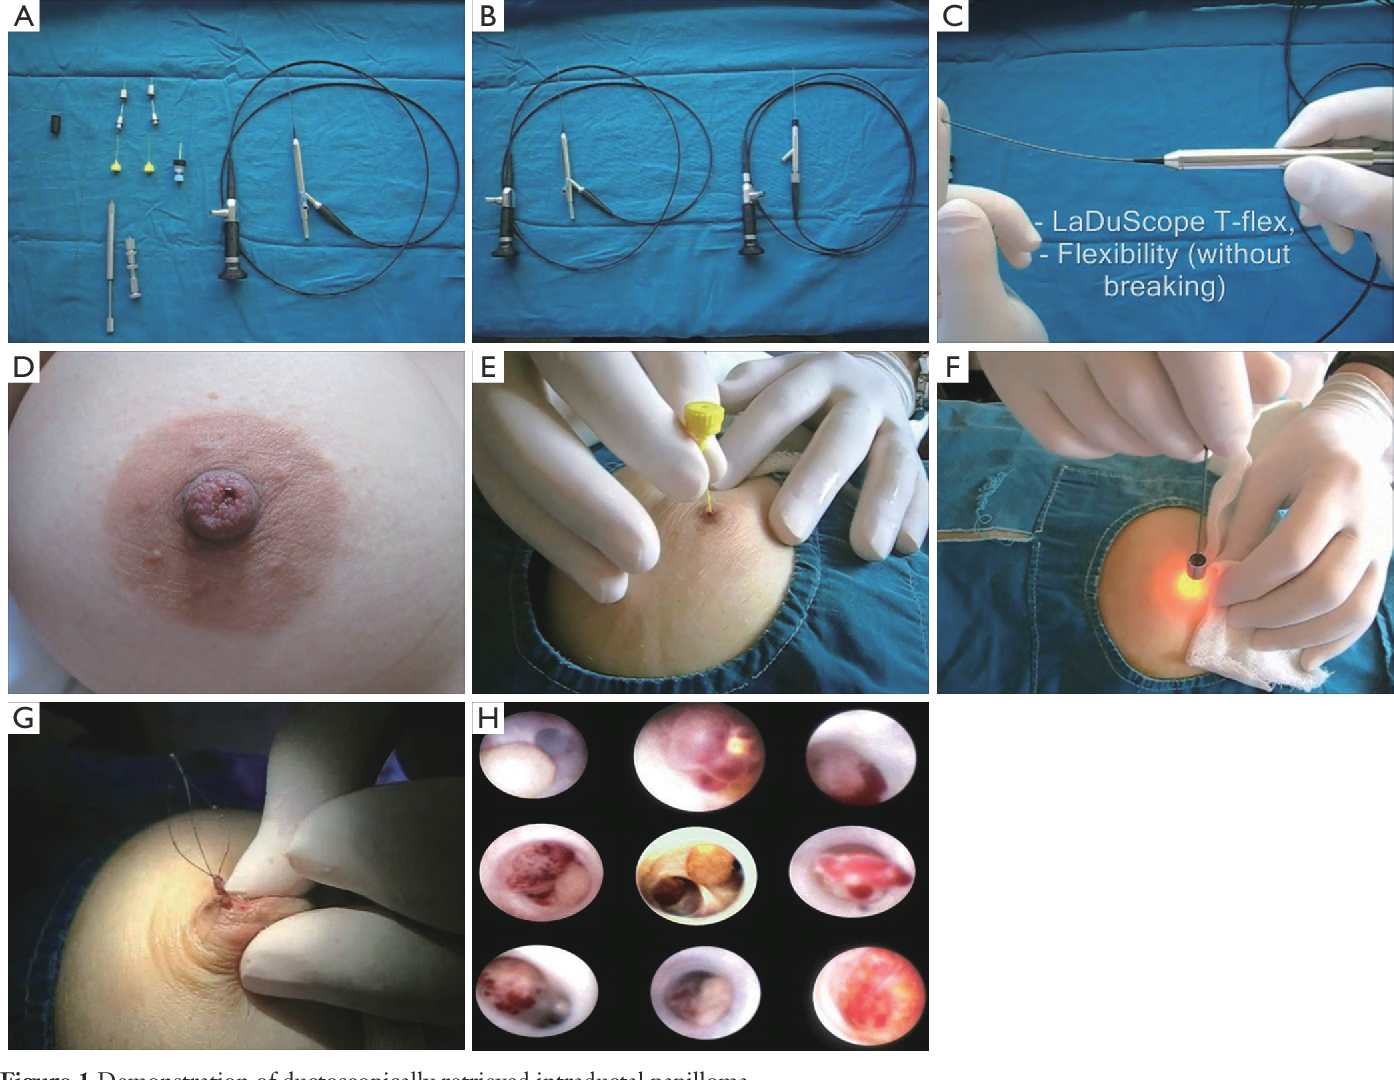 Intraductal papilloma excision procedure. Affiliations